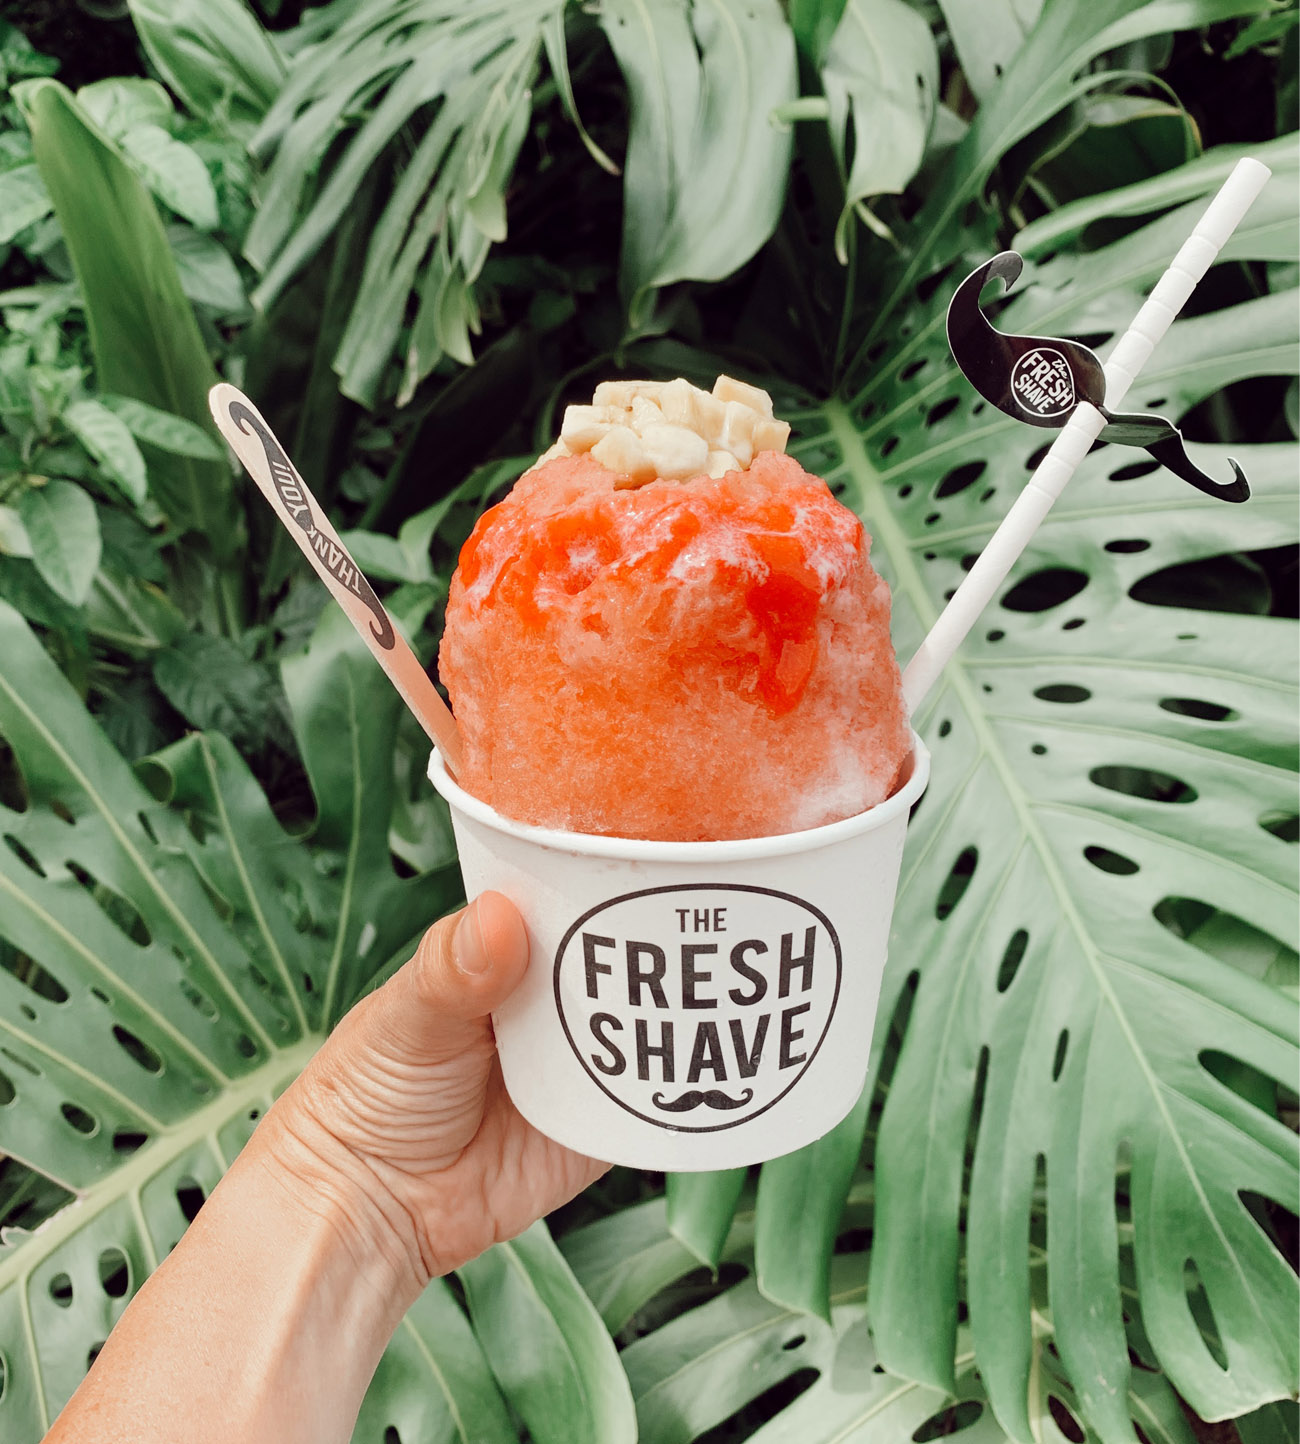 The Fresh Shave Shave Ice in Kauai